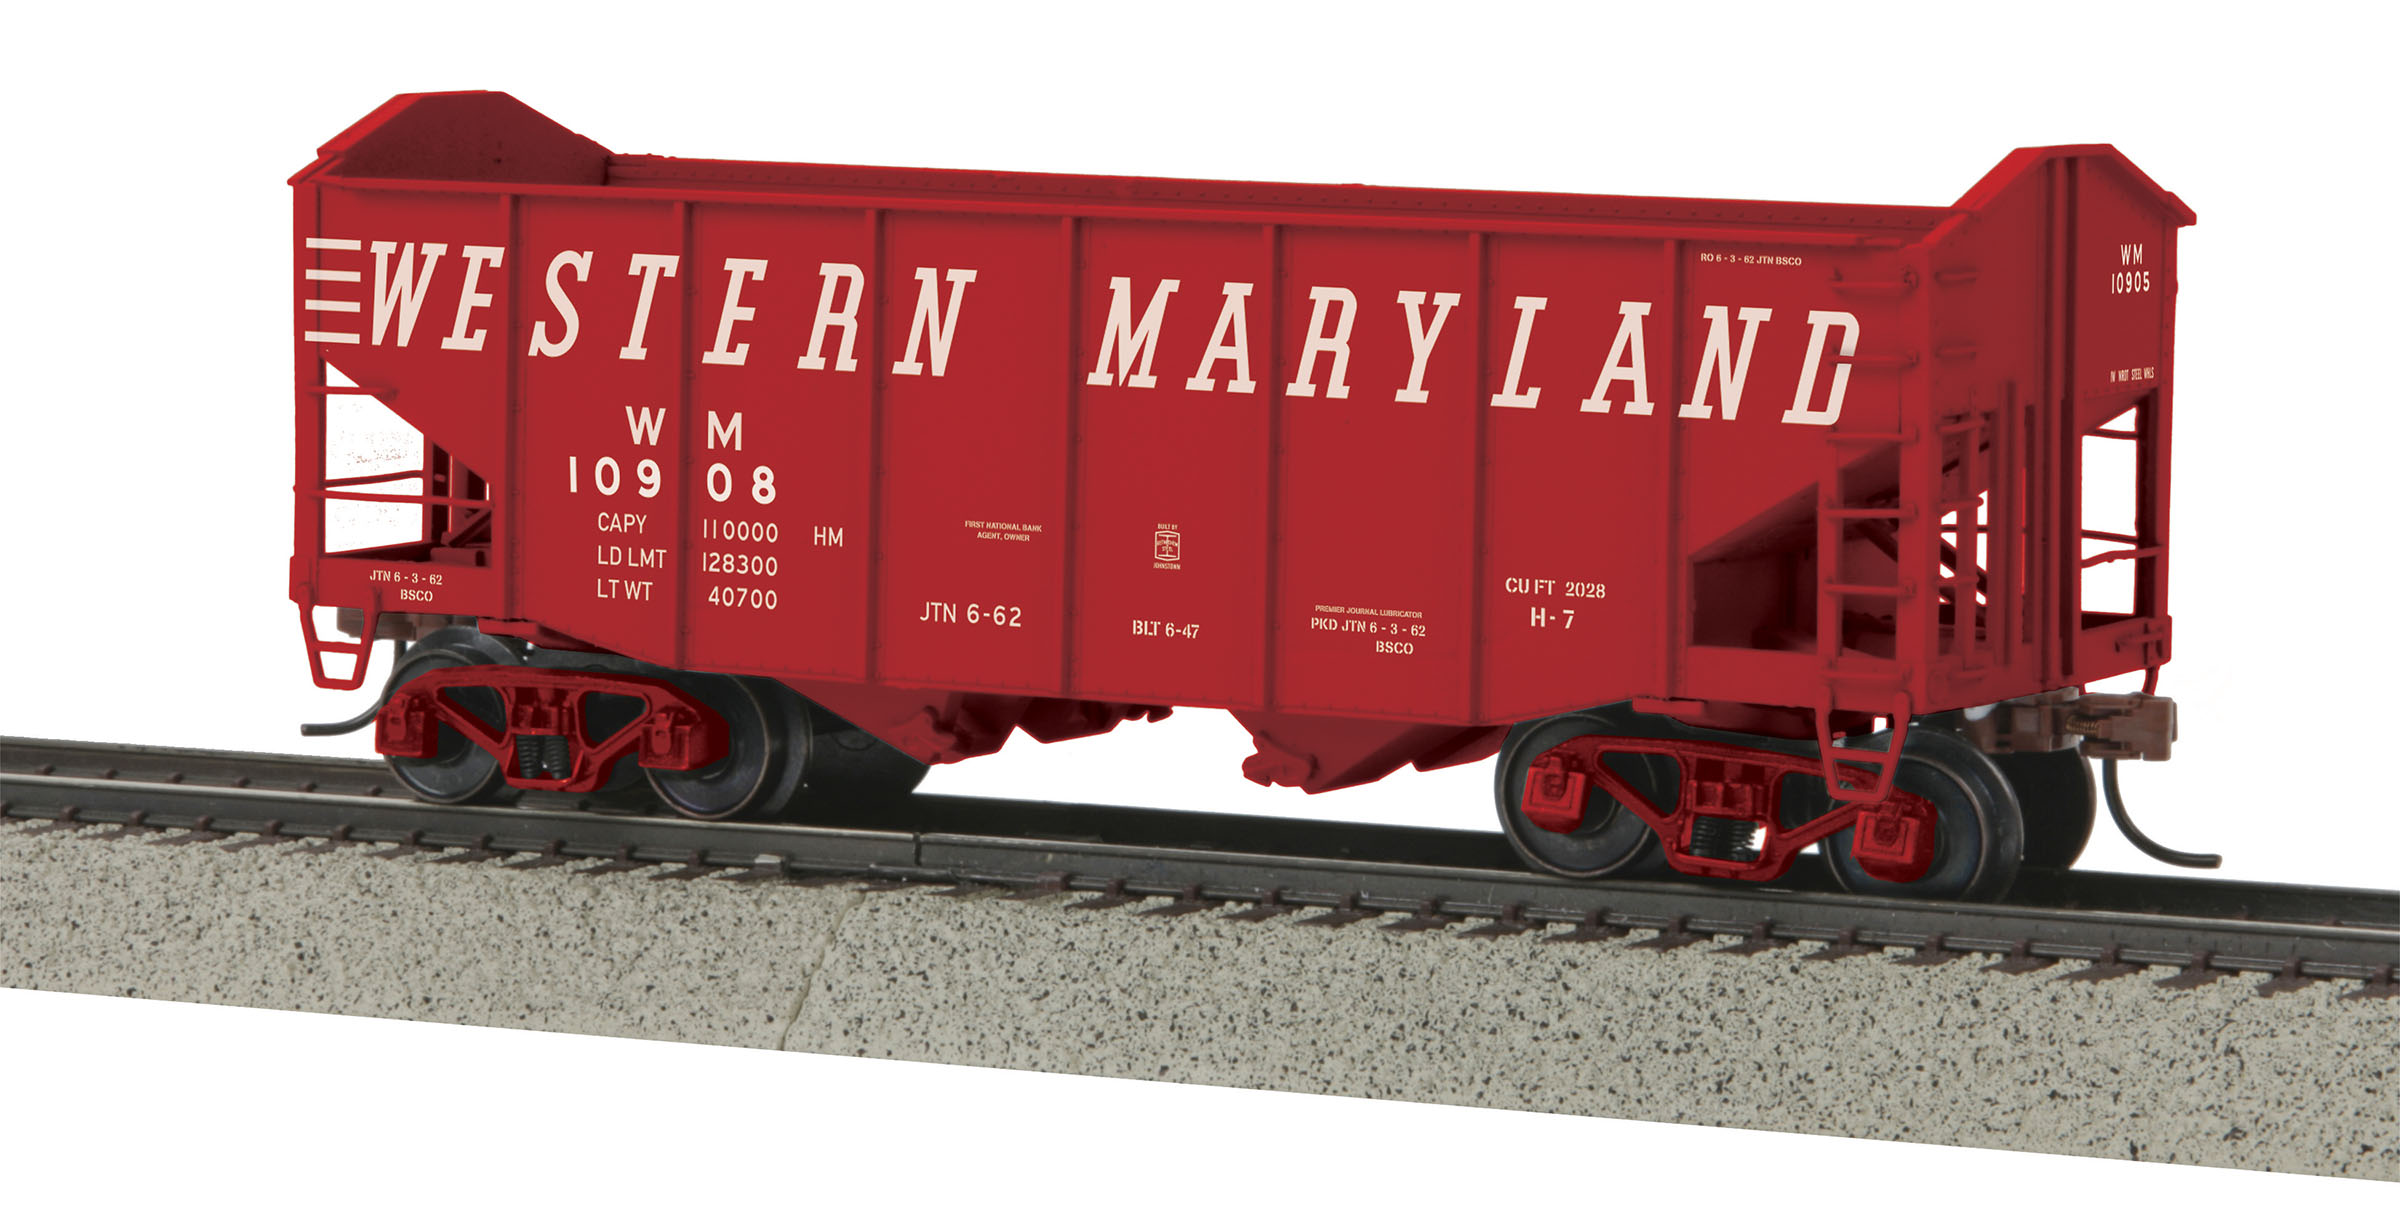 MTH 3575085 2-Bay Fish Belly Hopper Car Scale Wheels WM #10908